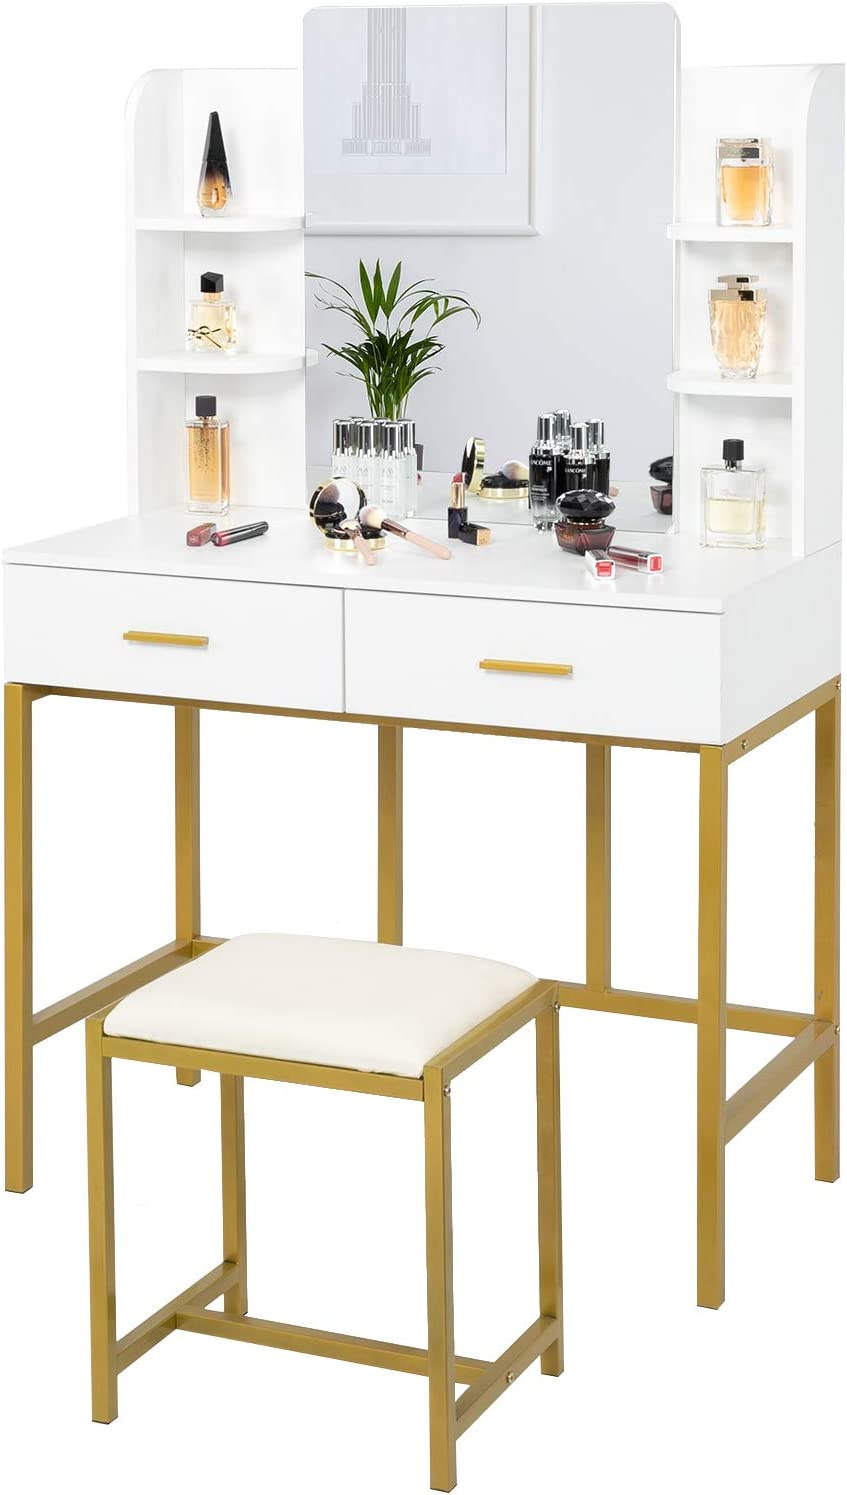 VINGLI Vanity Table Dressing Table Set with Storage Shelves & Vanity Mirror for Women Girls, Makeup Table Set with Sliding Drawers & Cushioned Stool for Bedroom